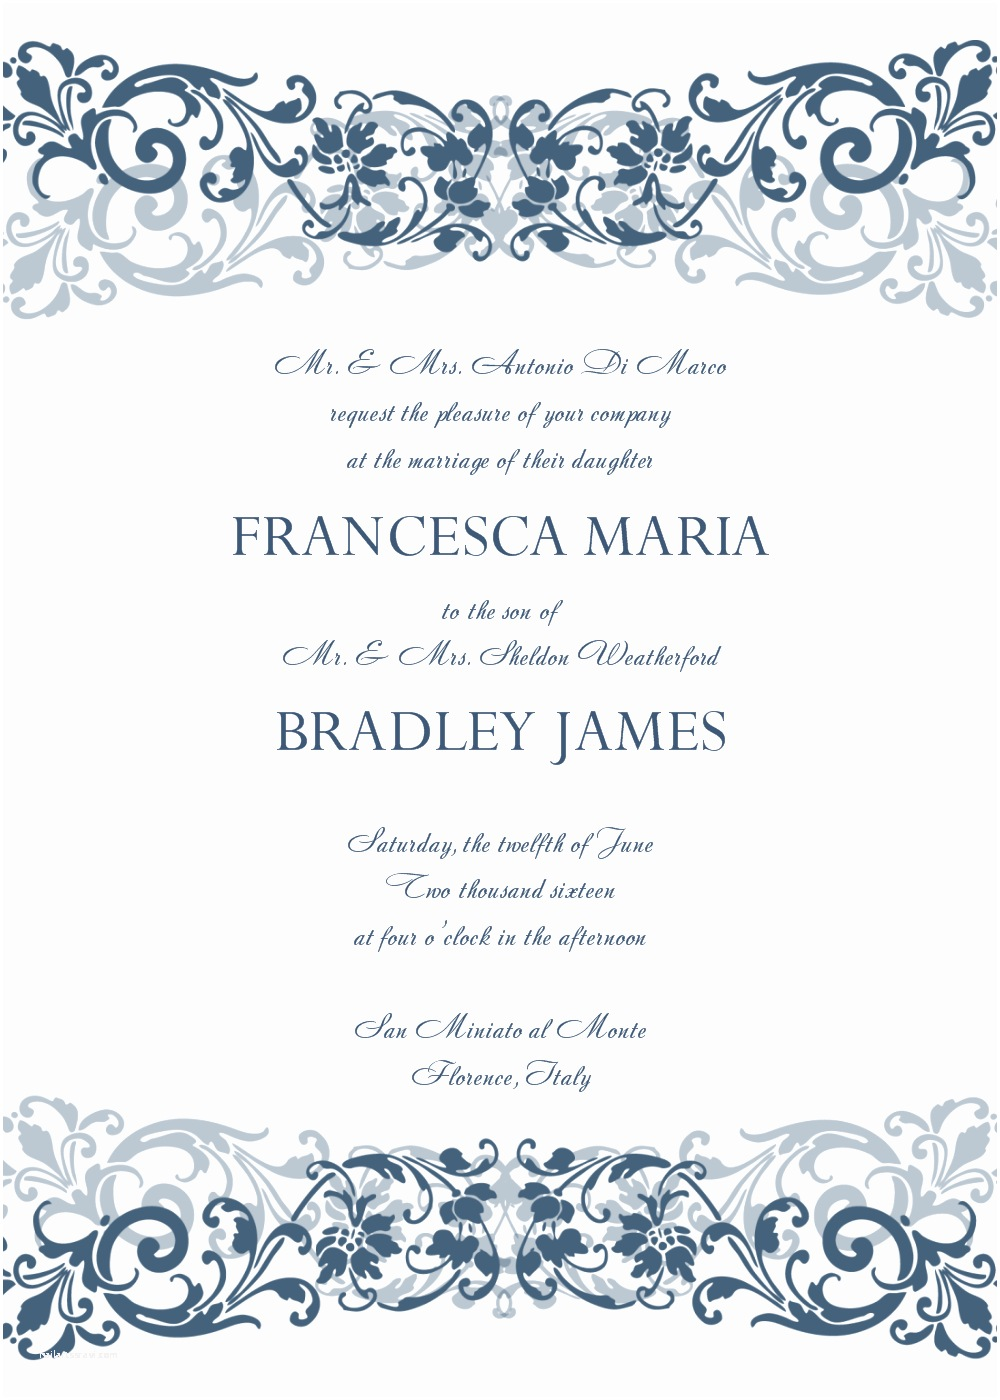 Wedding Invitation Templates 8 Free Wedding Invitation Templates Excel Pdf formats